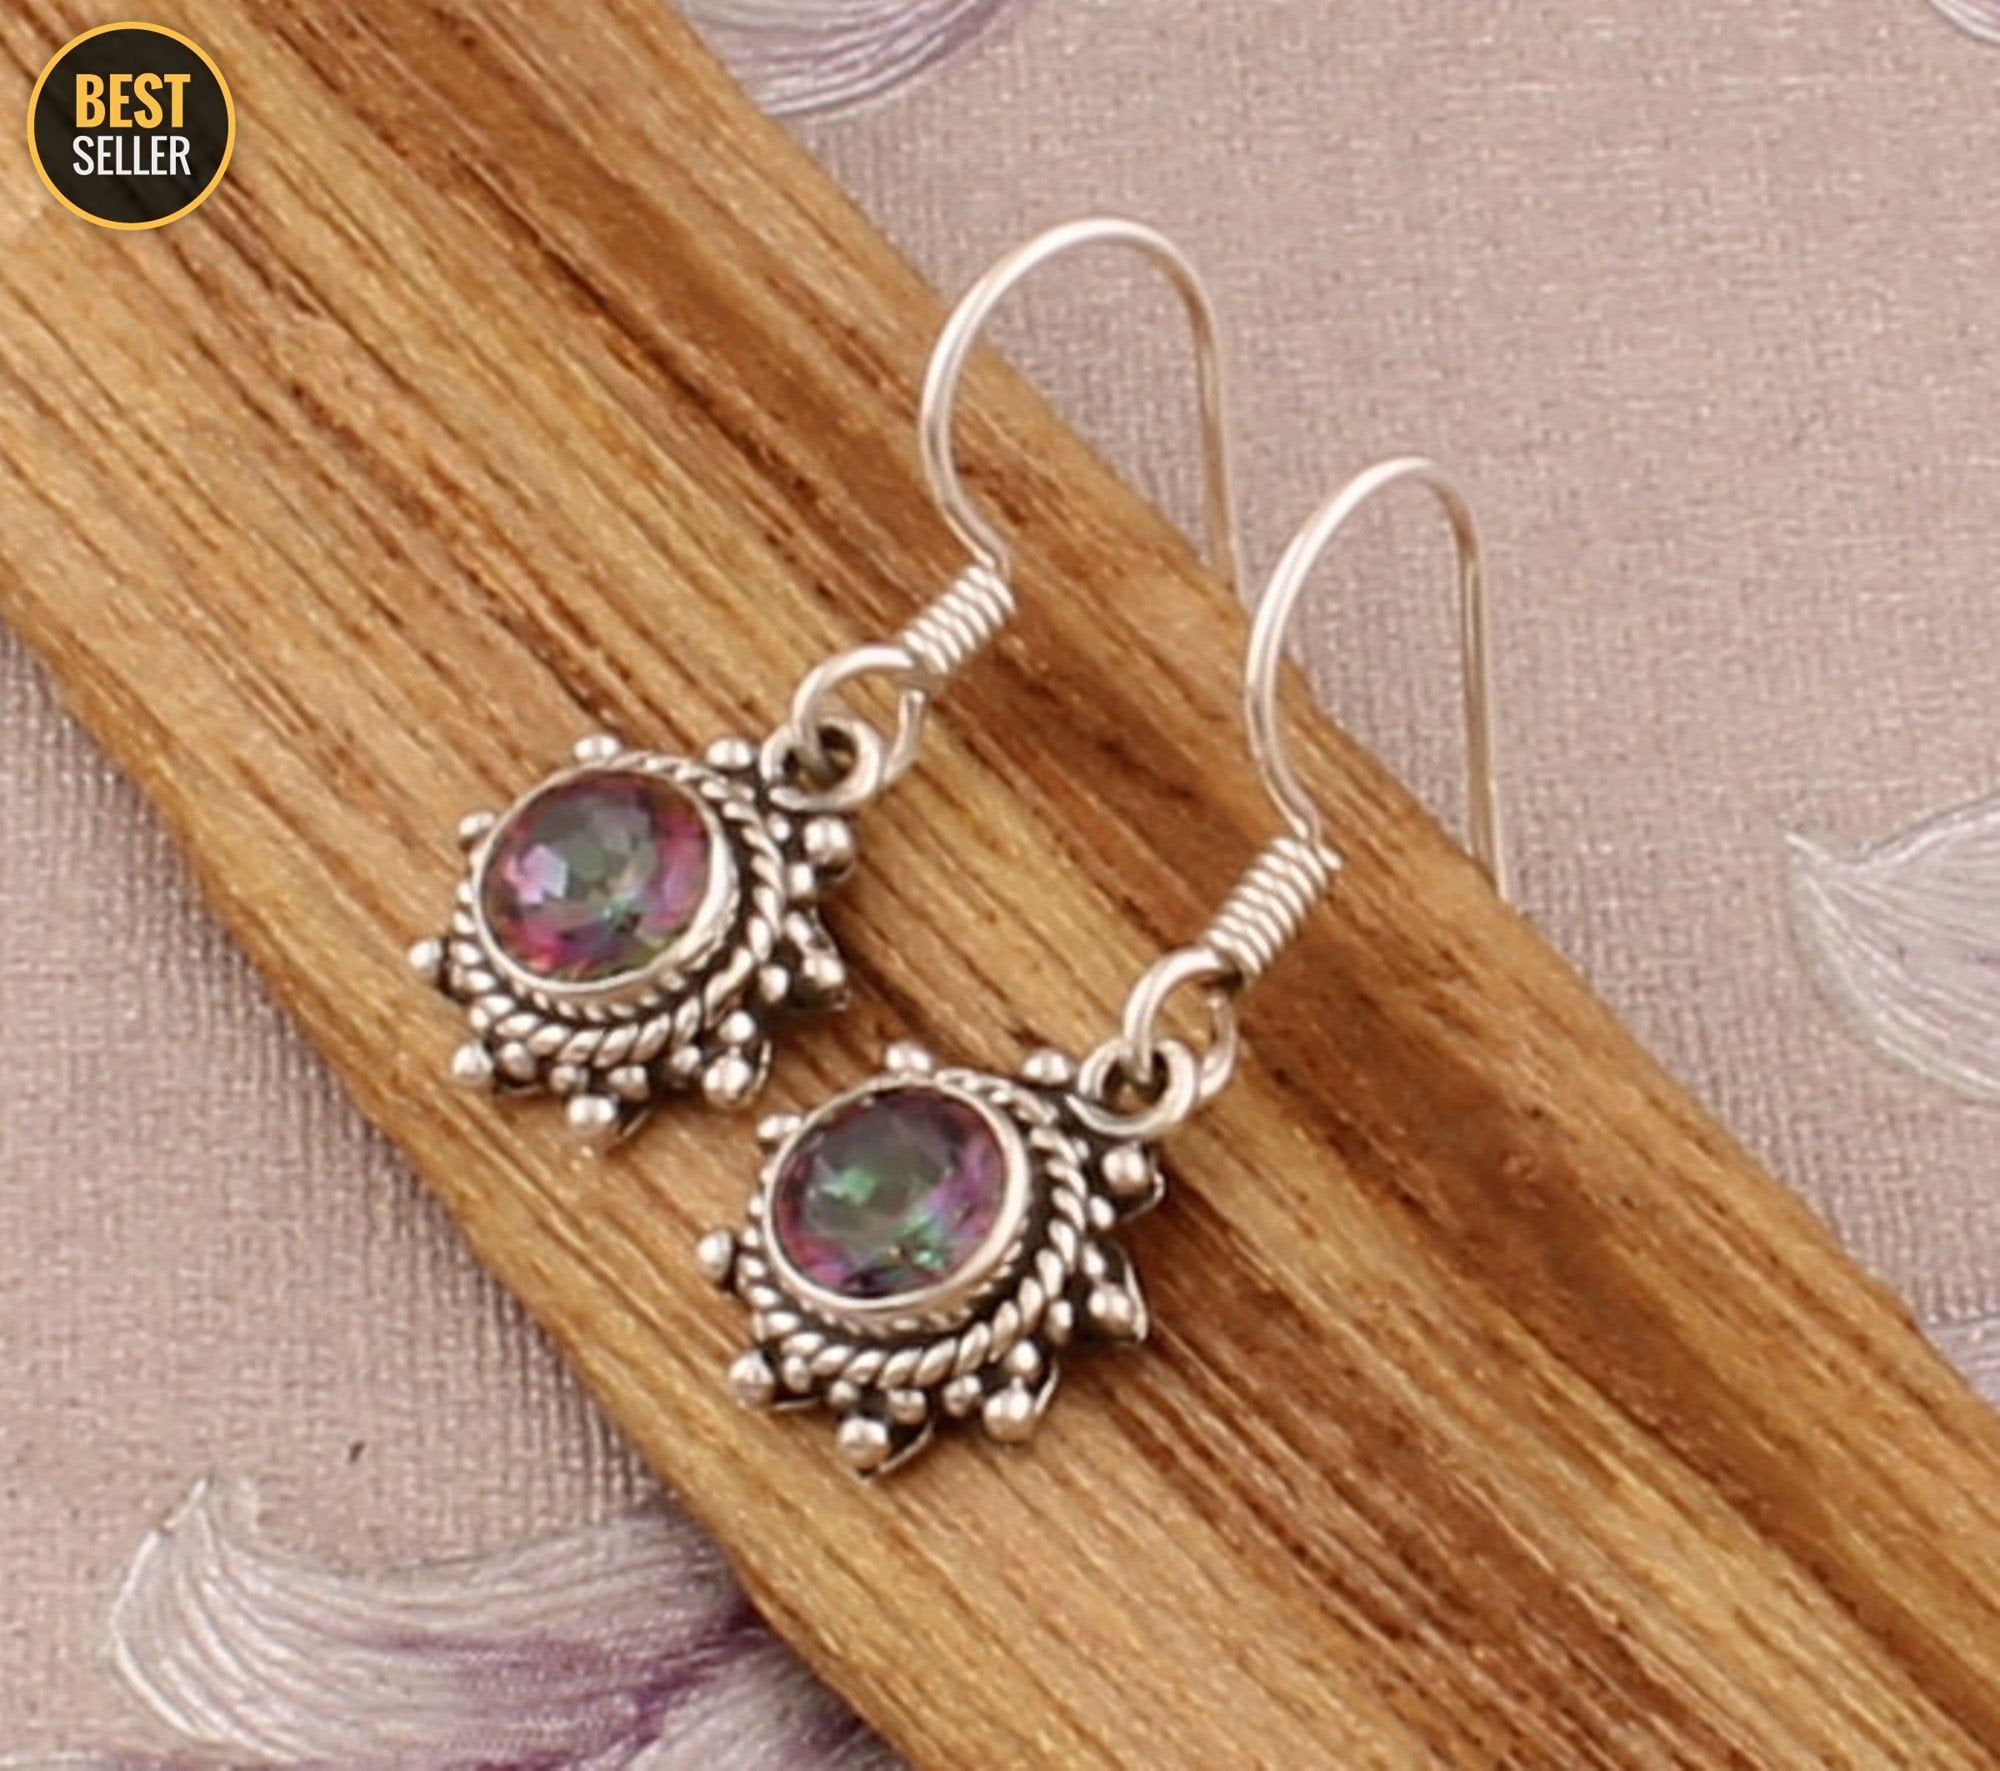 Real Pink Jade Top Quality Gemstone Handmade Earring Cabochon Stone Boho Earring 925-Antique Silver Earring Etsy Cyber Valentine/'s Day Gift